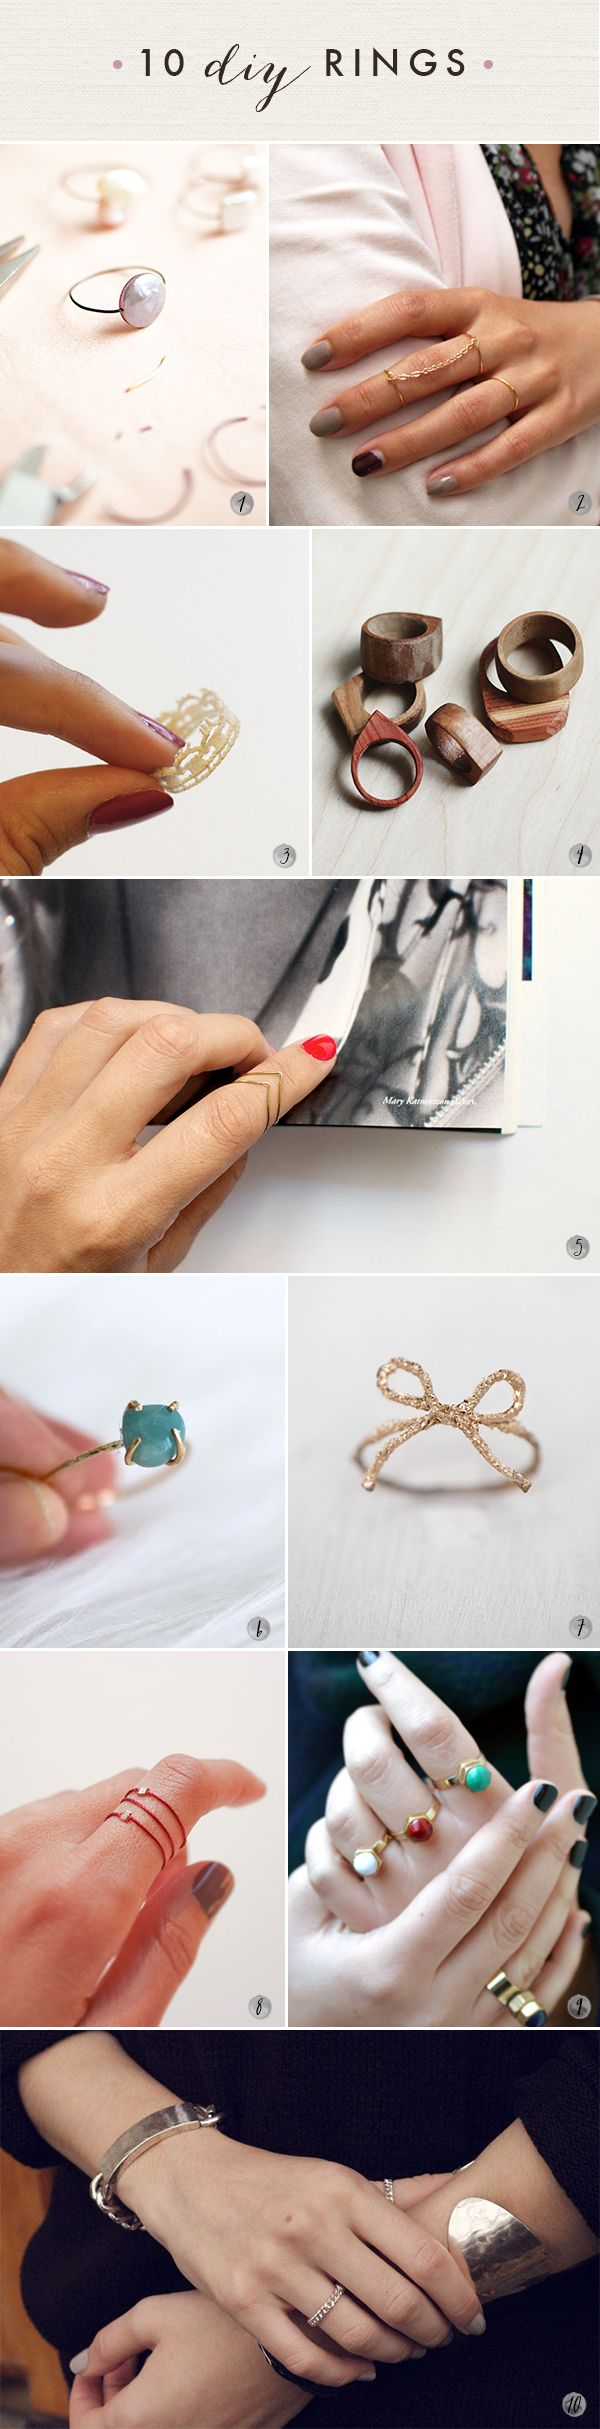 10 DIY rings                                                                                                                                                     More